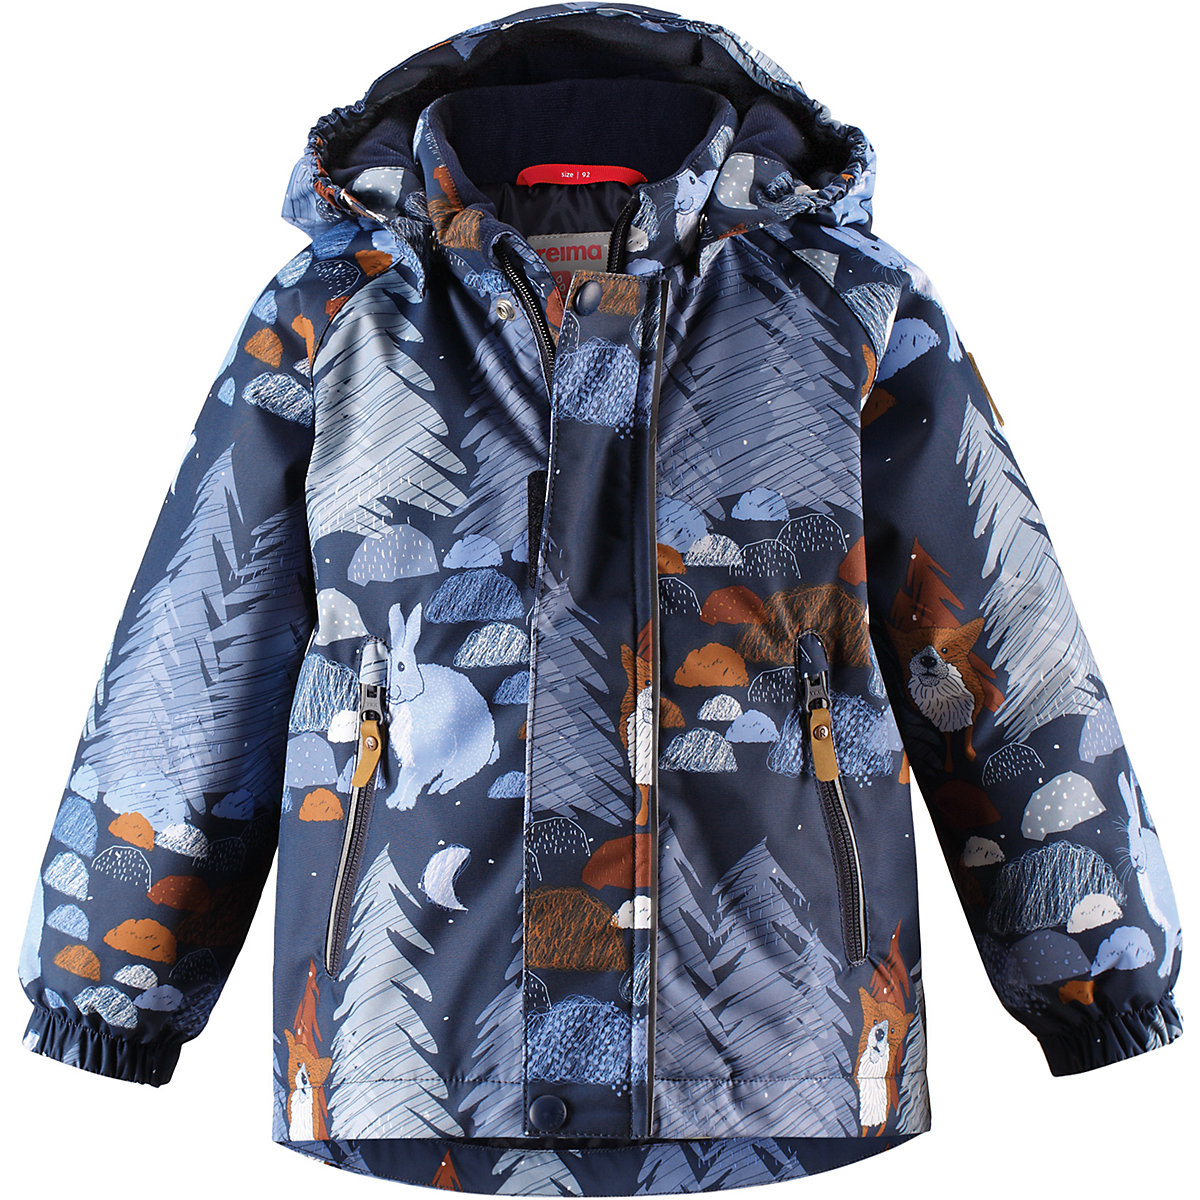 REIMA Jackets & Coats 8665397 for boys baby clothing winter warm boy girl jacket Polyester icebear 2018 fashion winter jacket men s brand clothing jacket high quality thick warm men winter coat down jacket 17md811